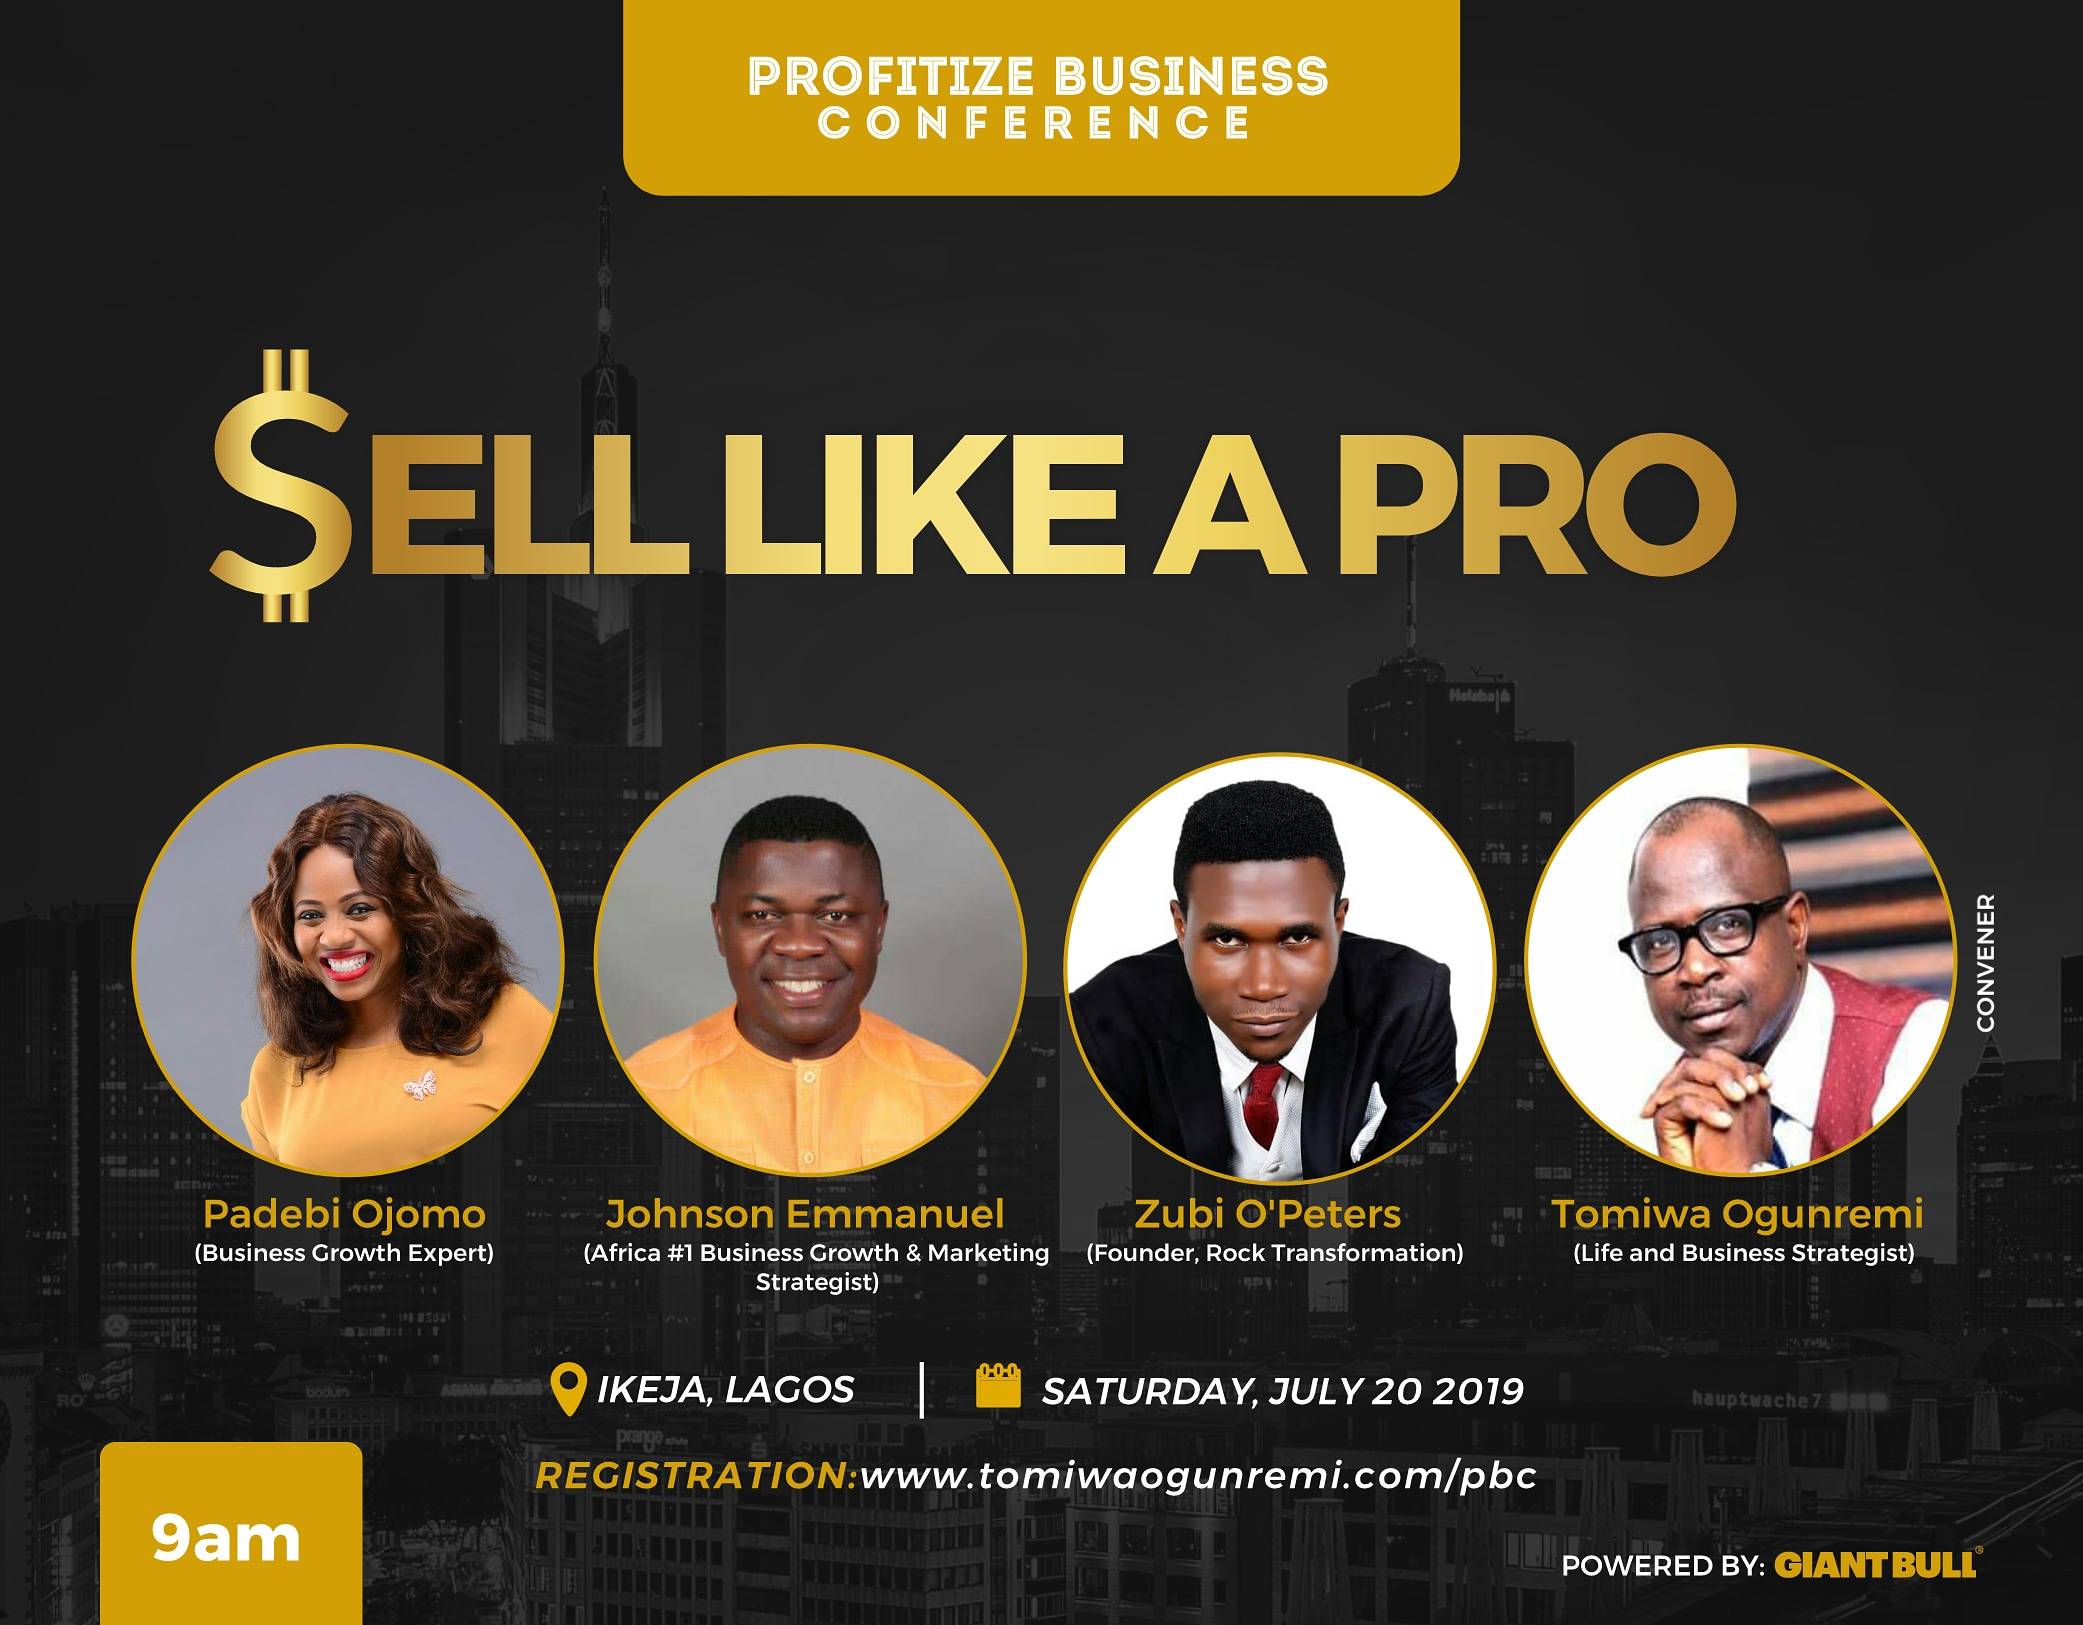 Profitize Business Conference (Sell Like a Pro Post free event in Nigeria using tickethub.ng, buy and sell tickets to event